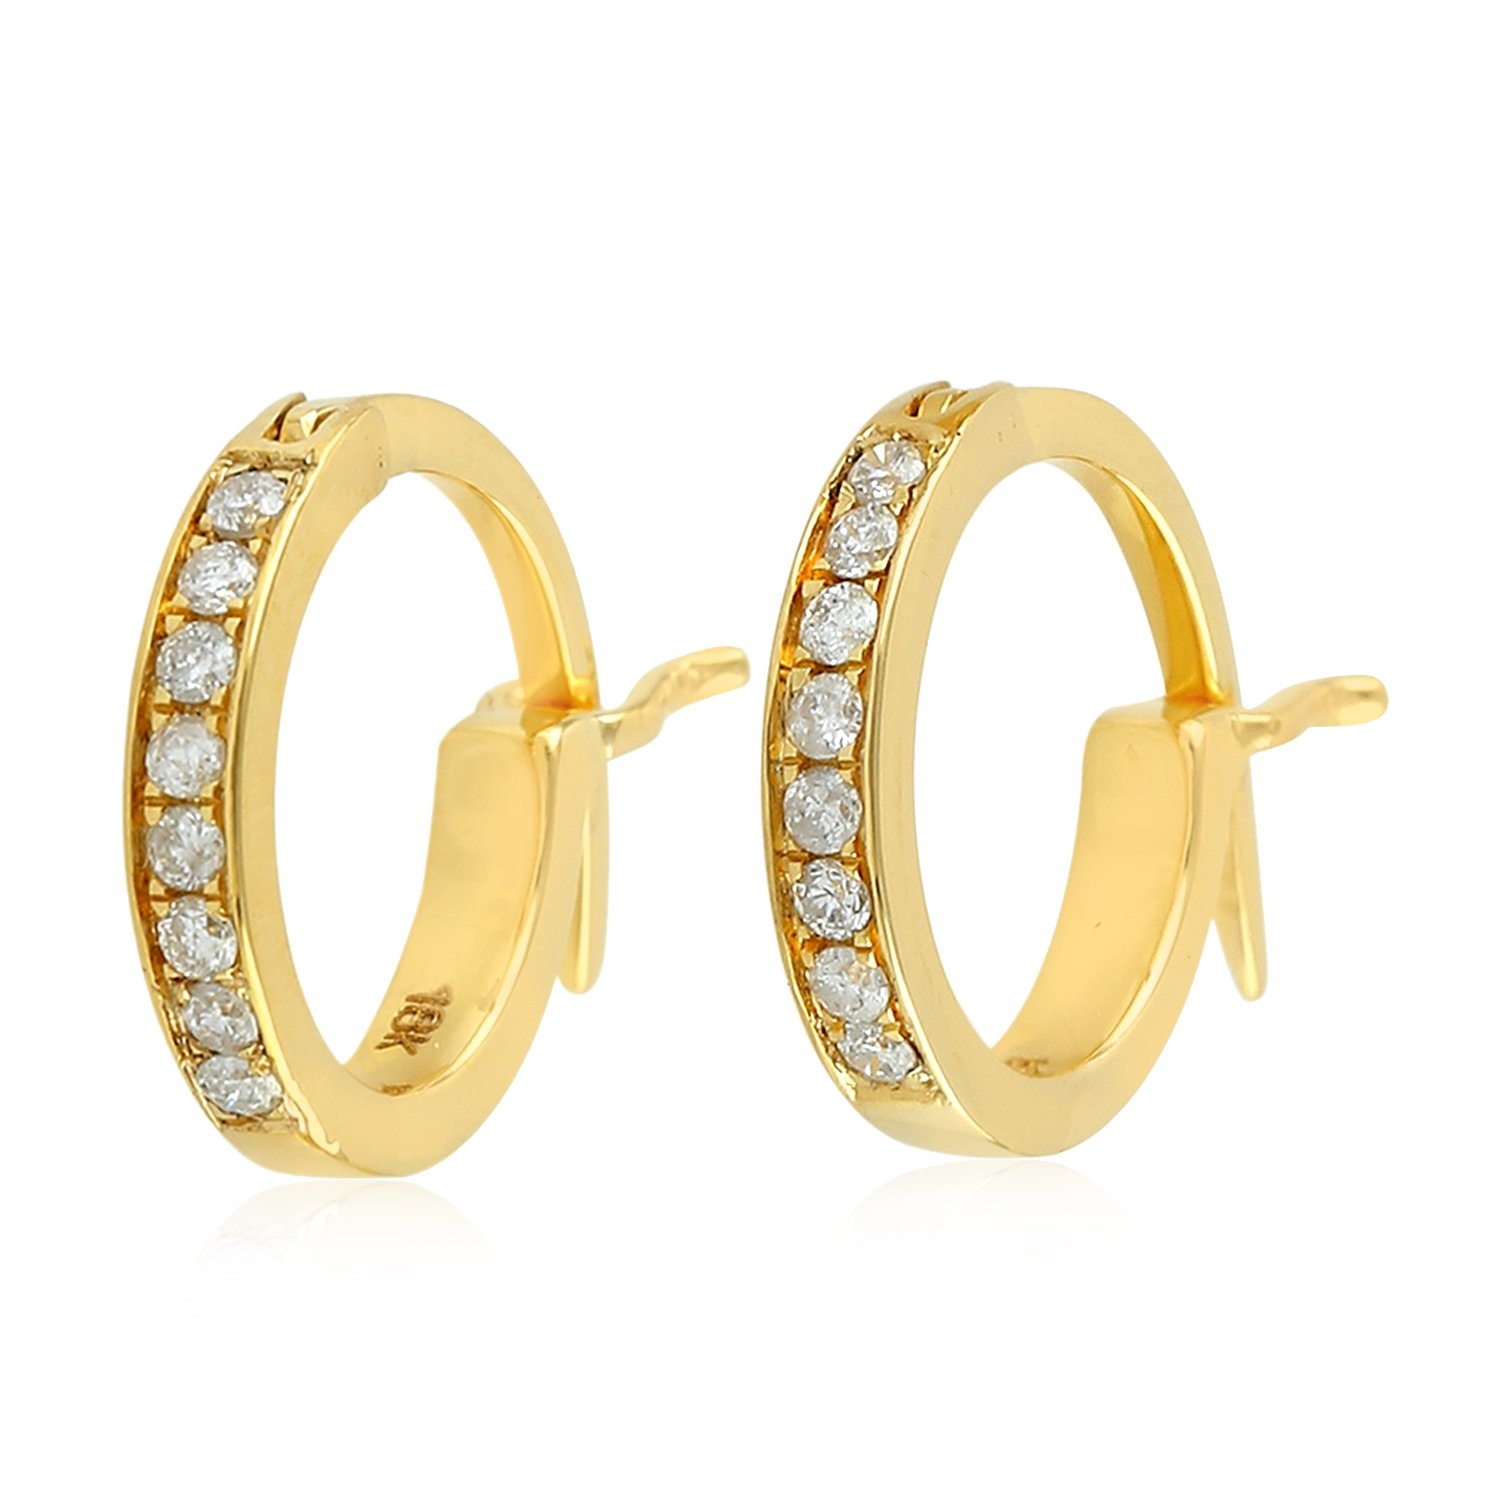 Micropave-Set White Diamond Huggie Hoop Earrings in 18K Yellow Gold